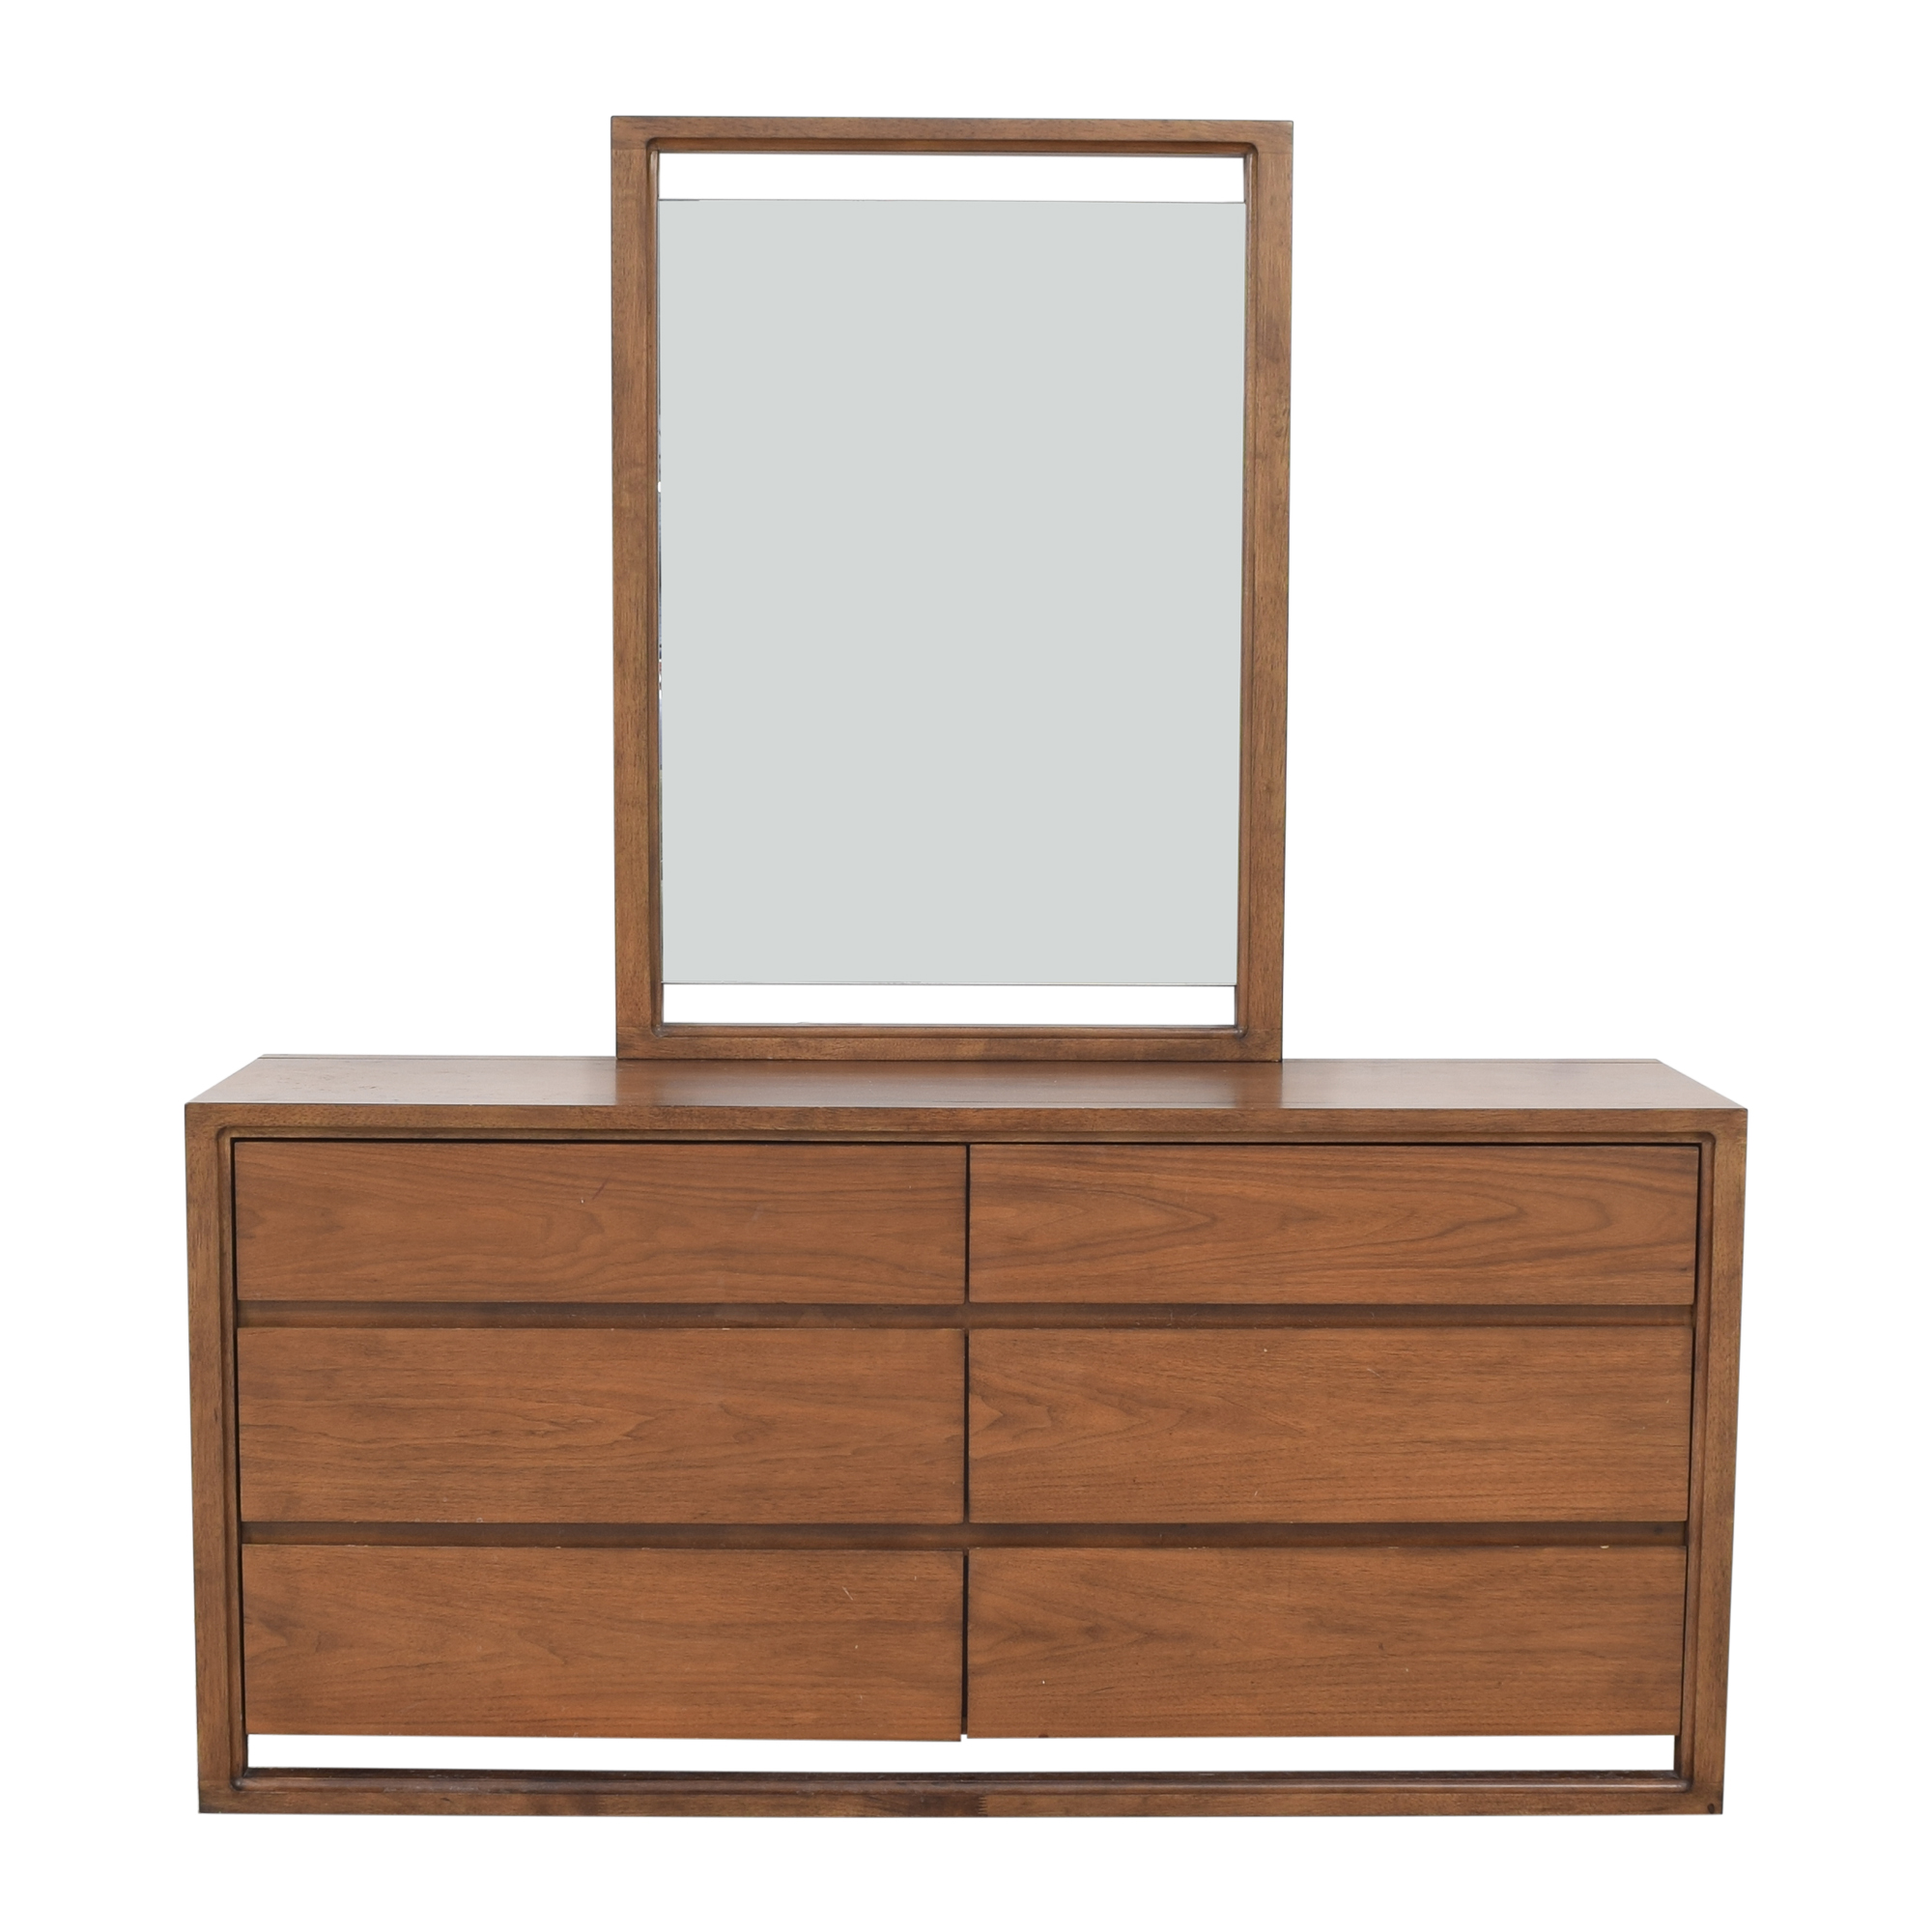 shop Raymour & Flanigan Raymour & Flanigan Aversa Six-Drawer Dresser with Mirror online